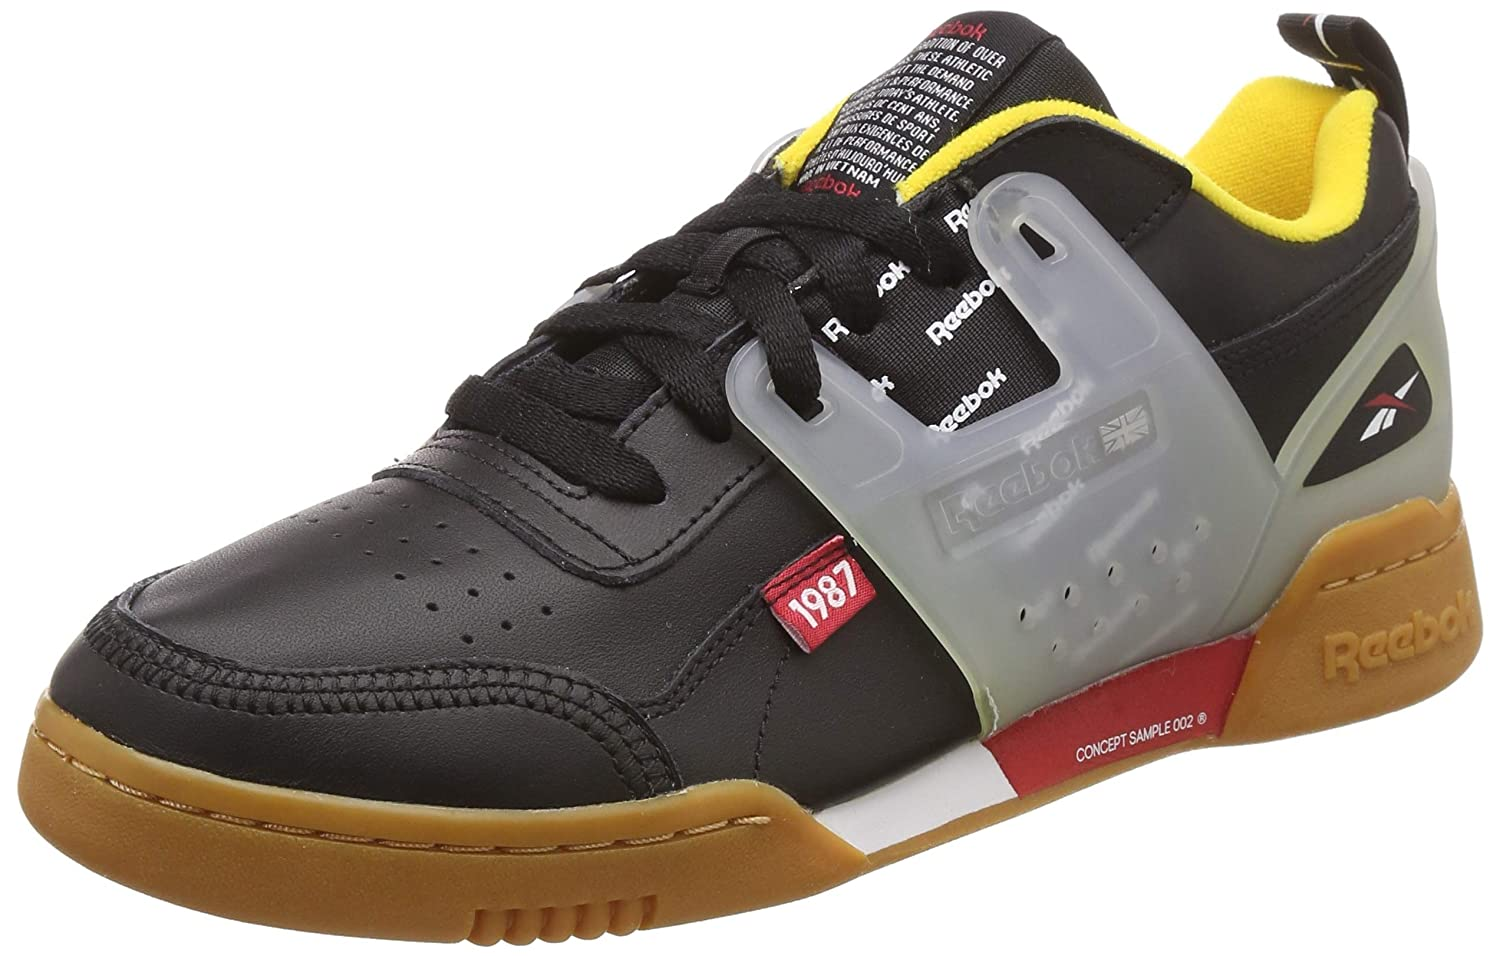 super cheap compares to high quality materials aliexpress Reebok Unisex's Workout Plus Ati Black/Red/Yellow/Grey/Gum ...